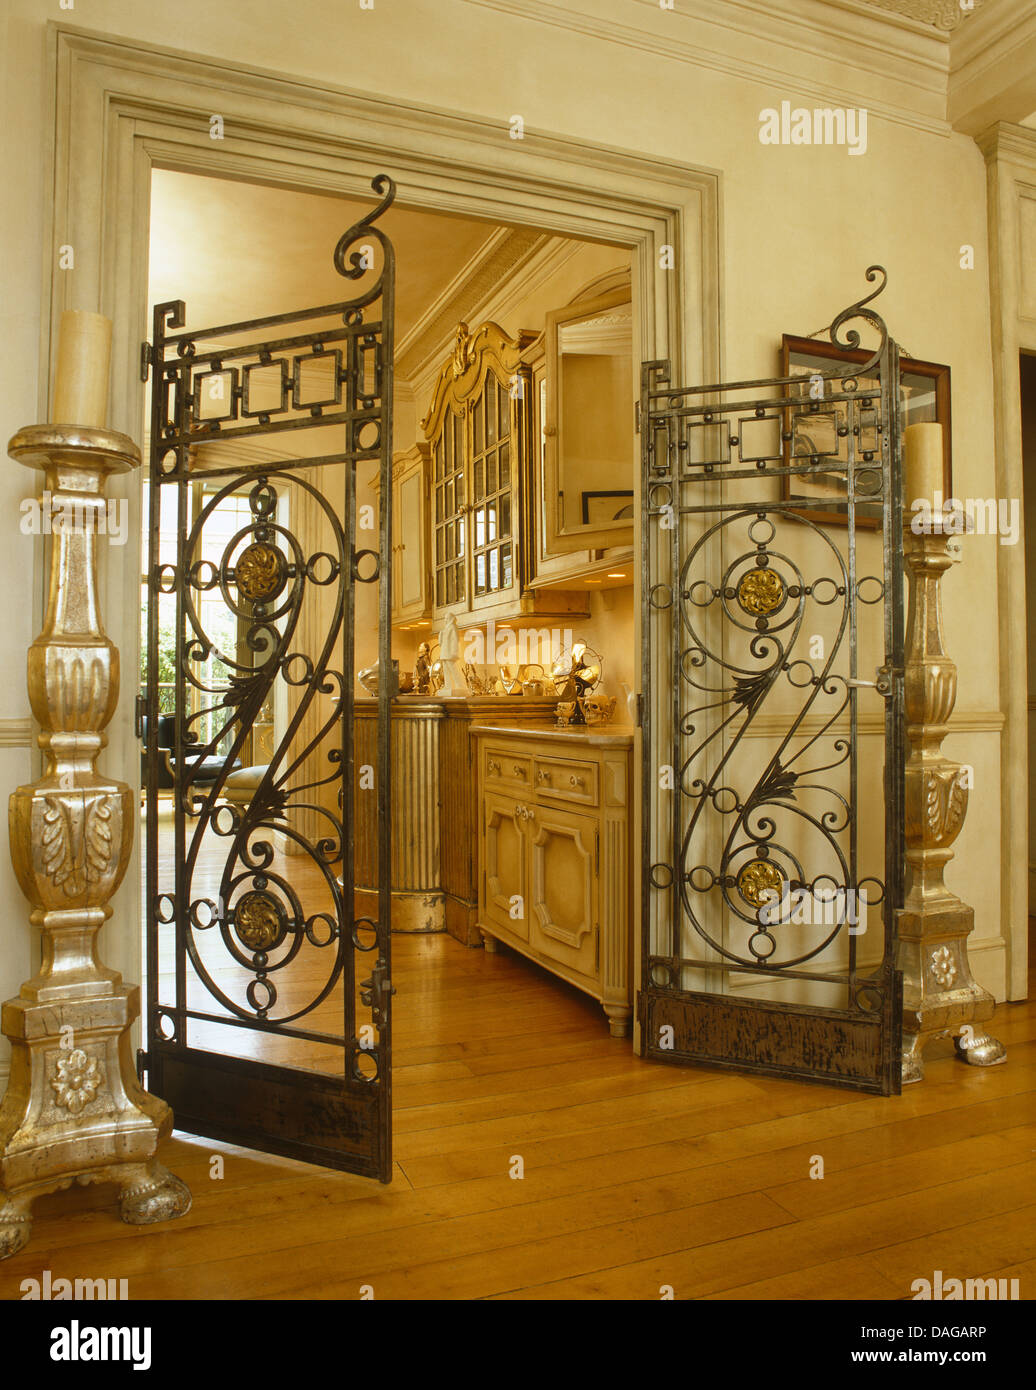 Tall Candlestick Beside Large Wrought Iron Gates On